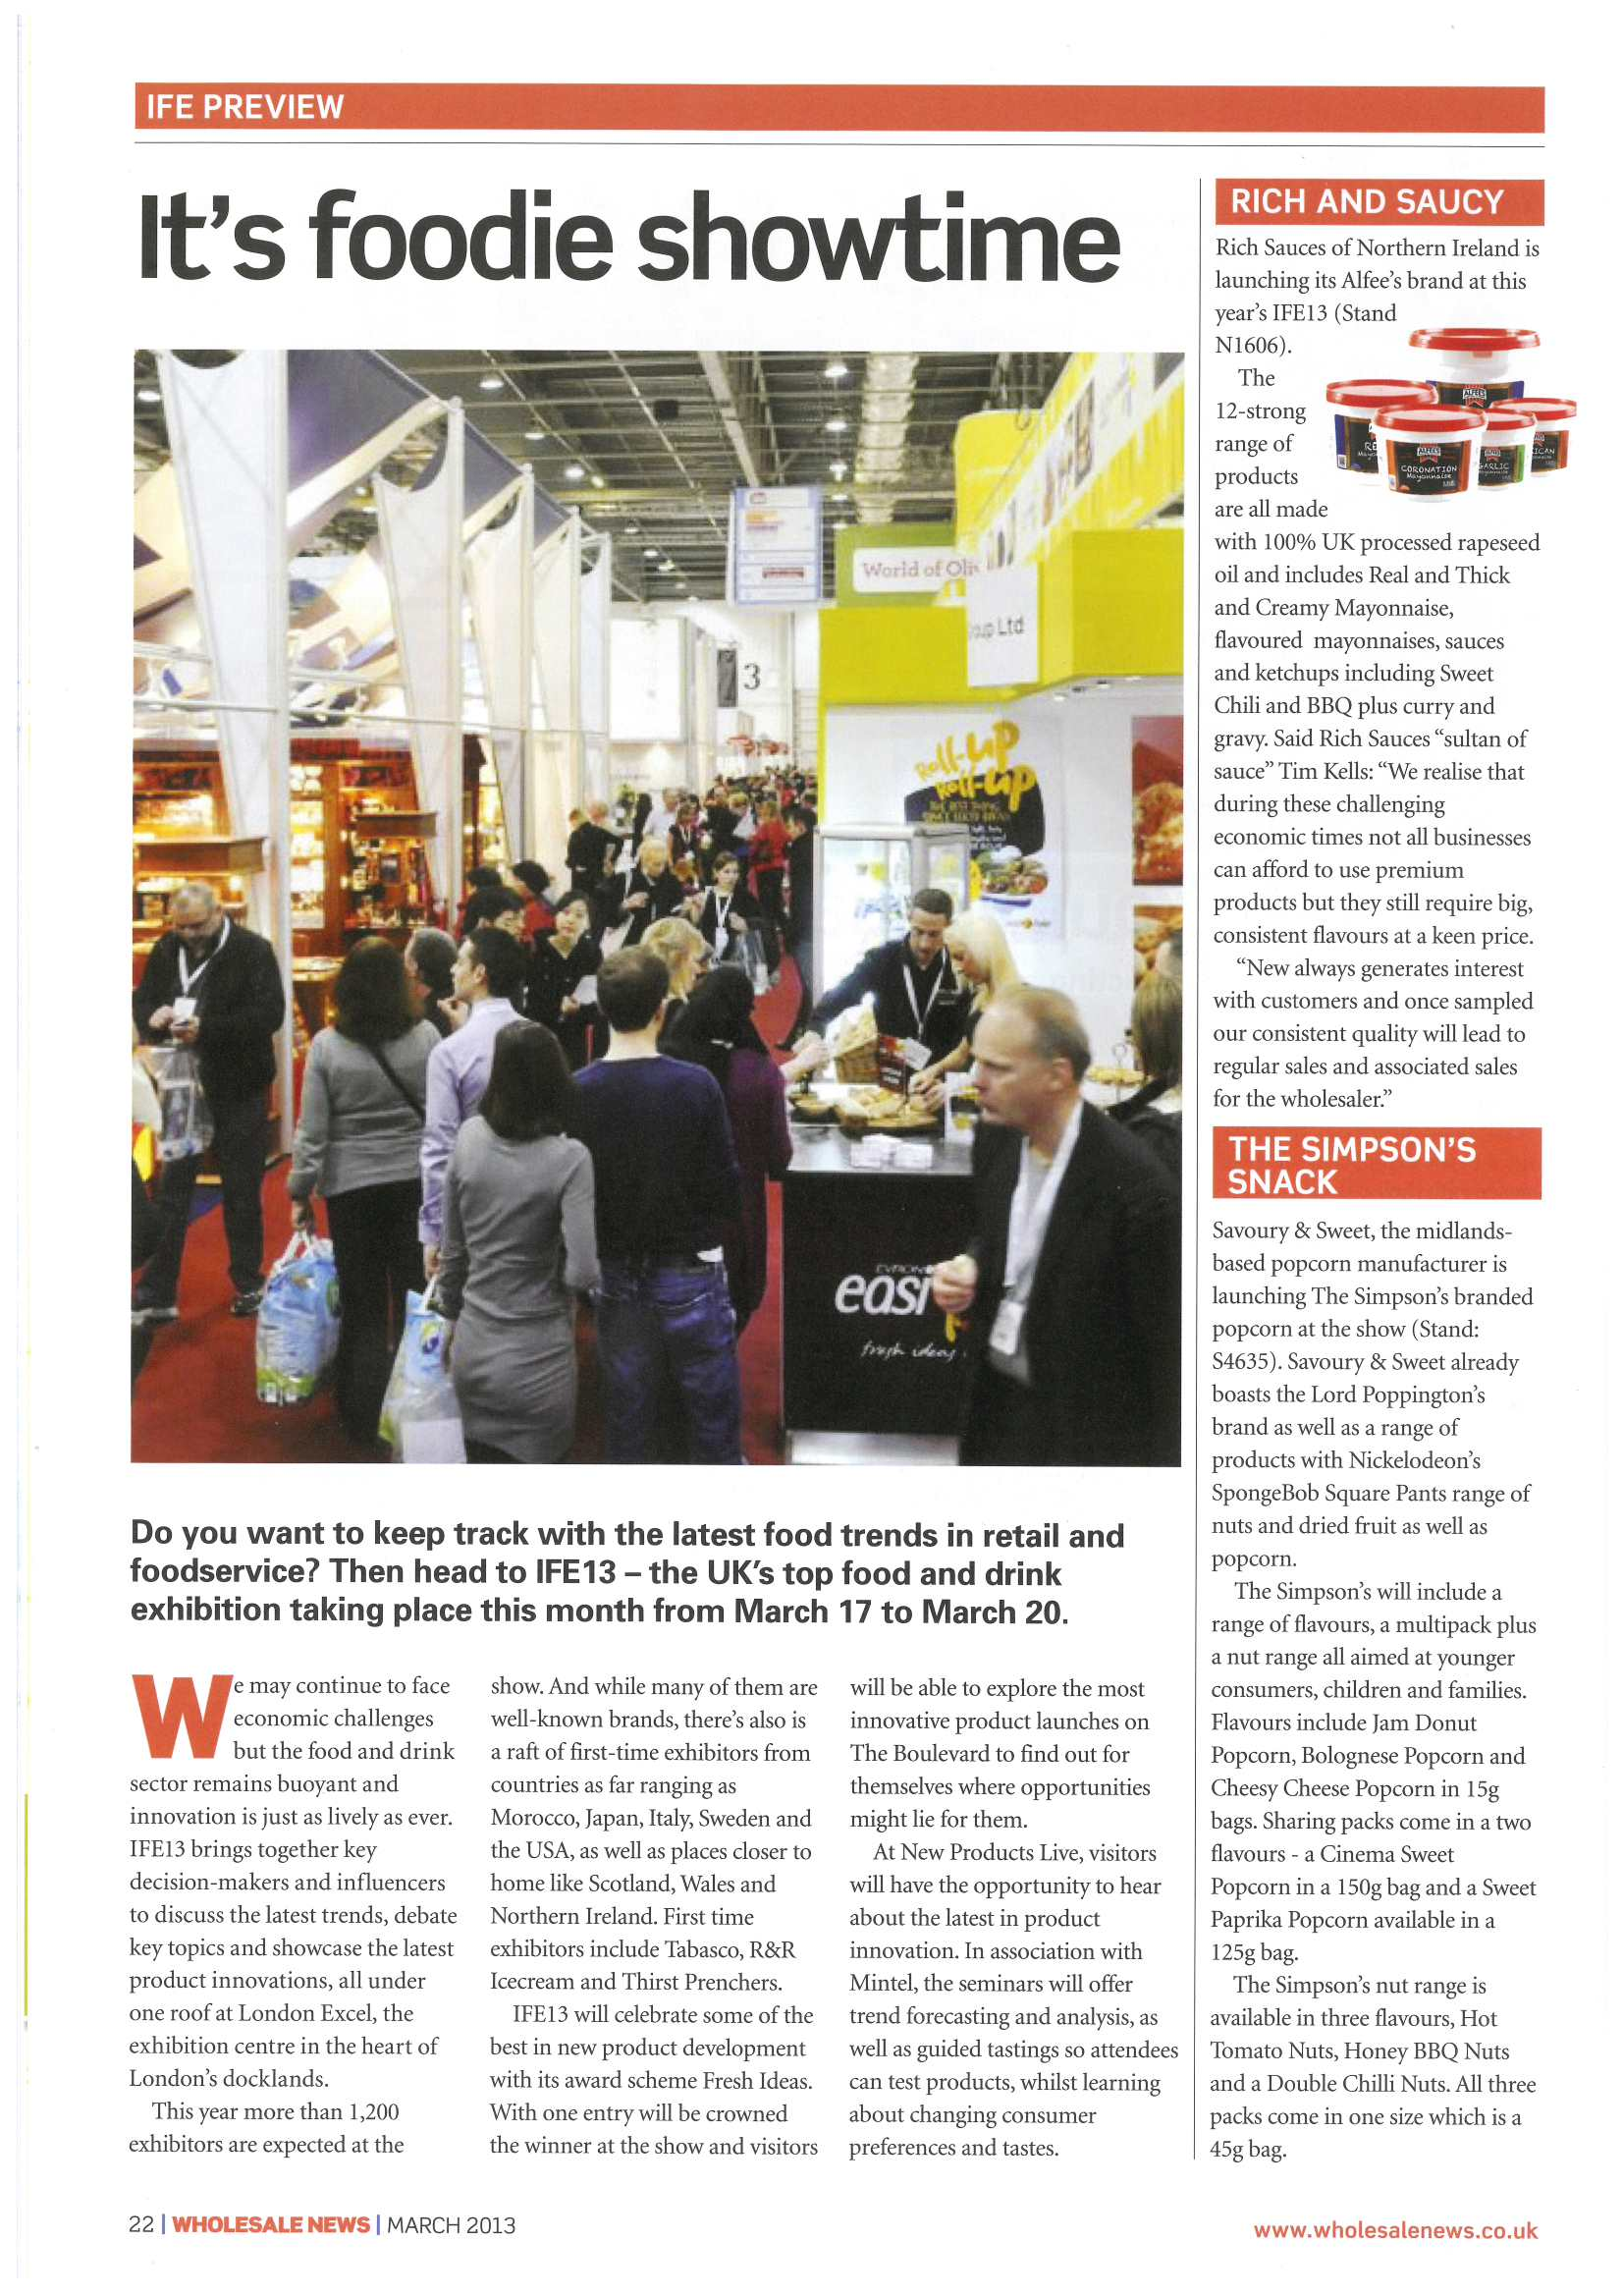 Wholesale News - March 2013 Alfees featured in IFE preview